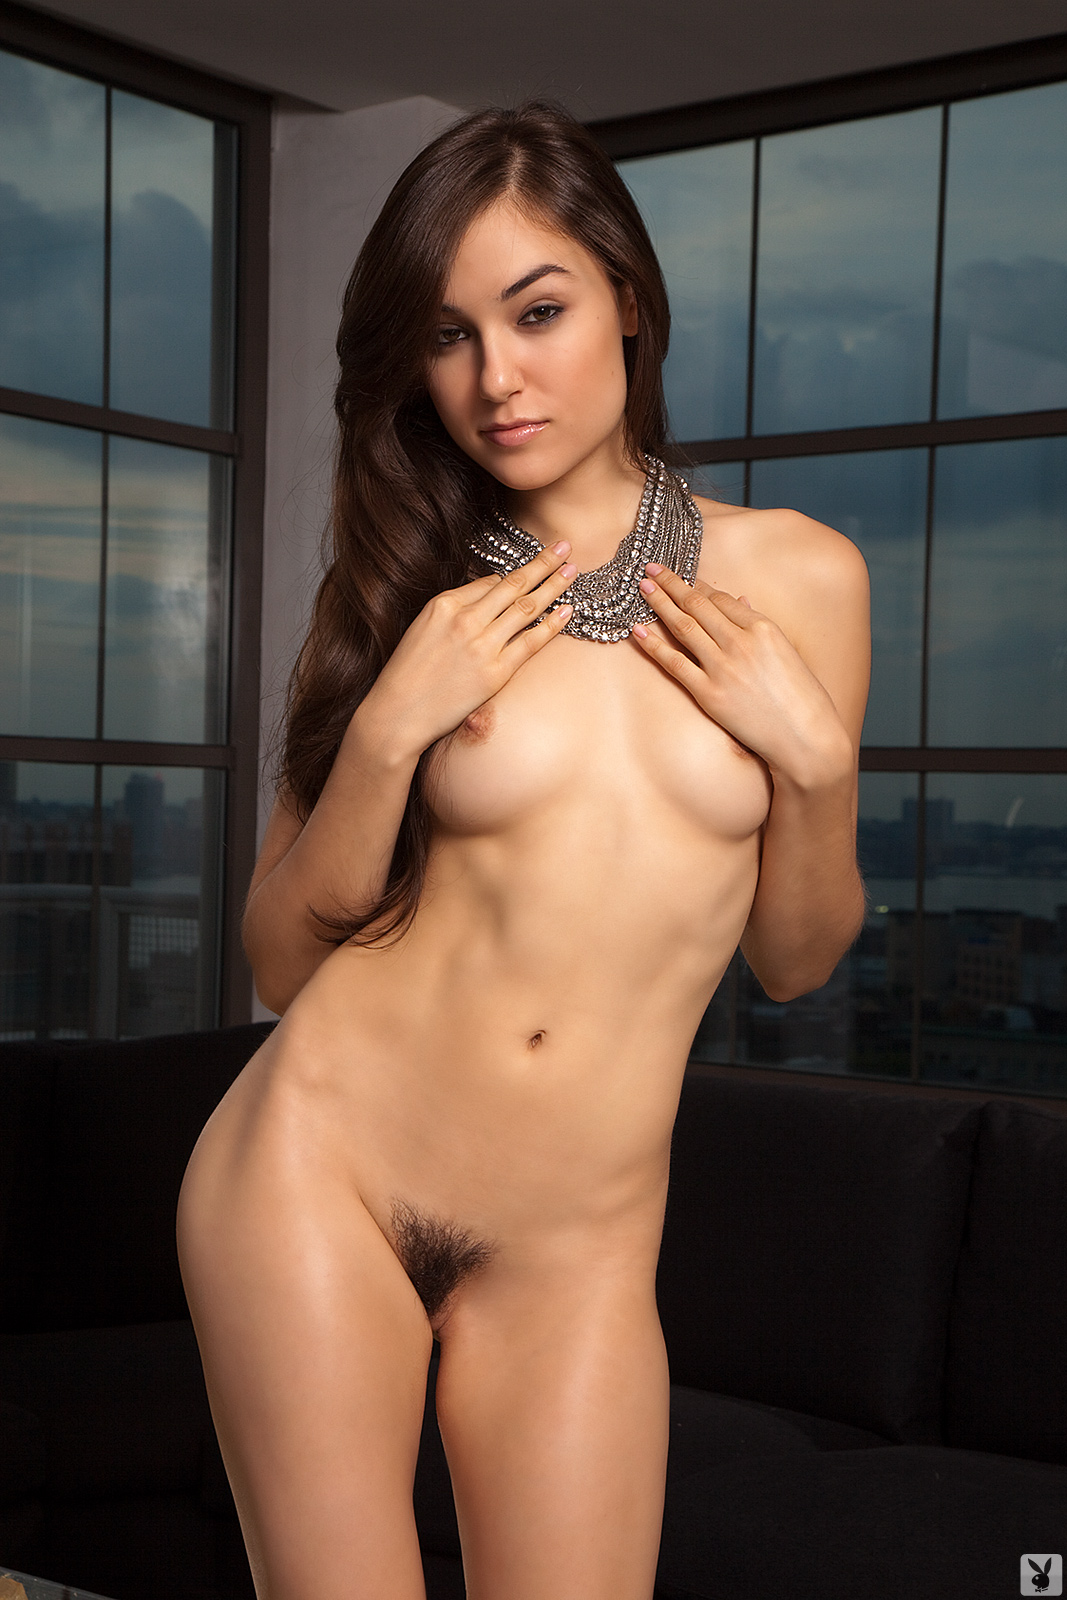 Sasha grey playboy